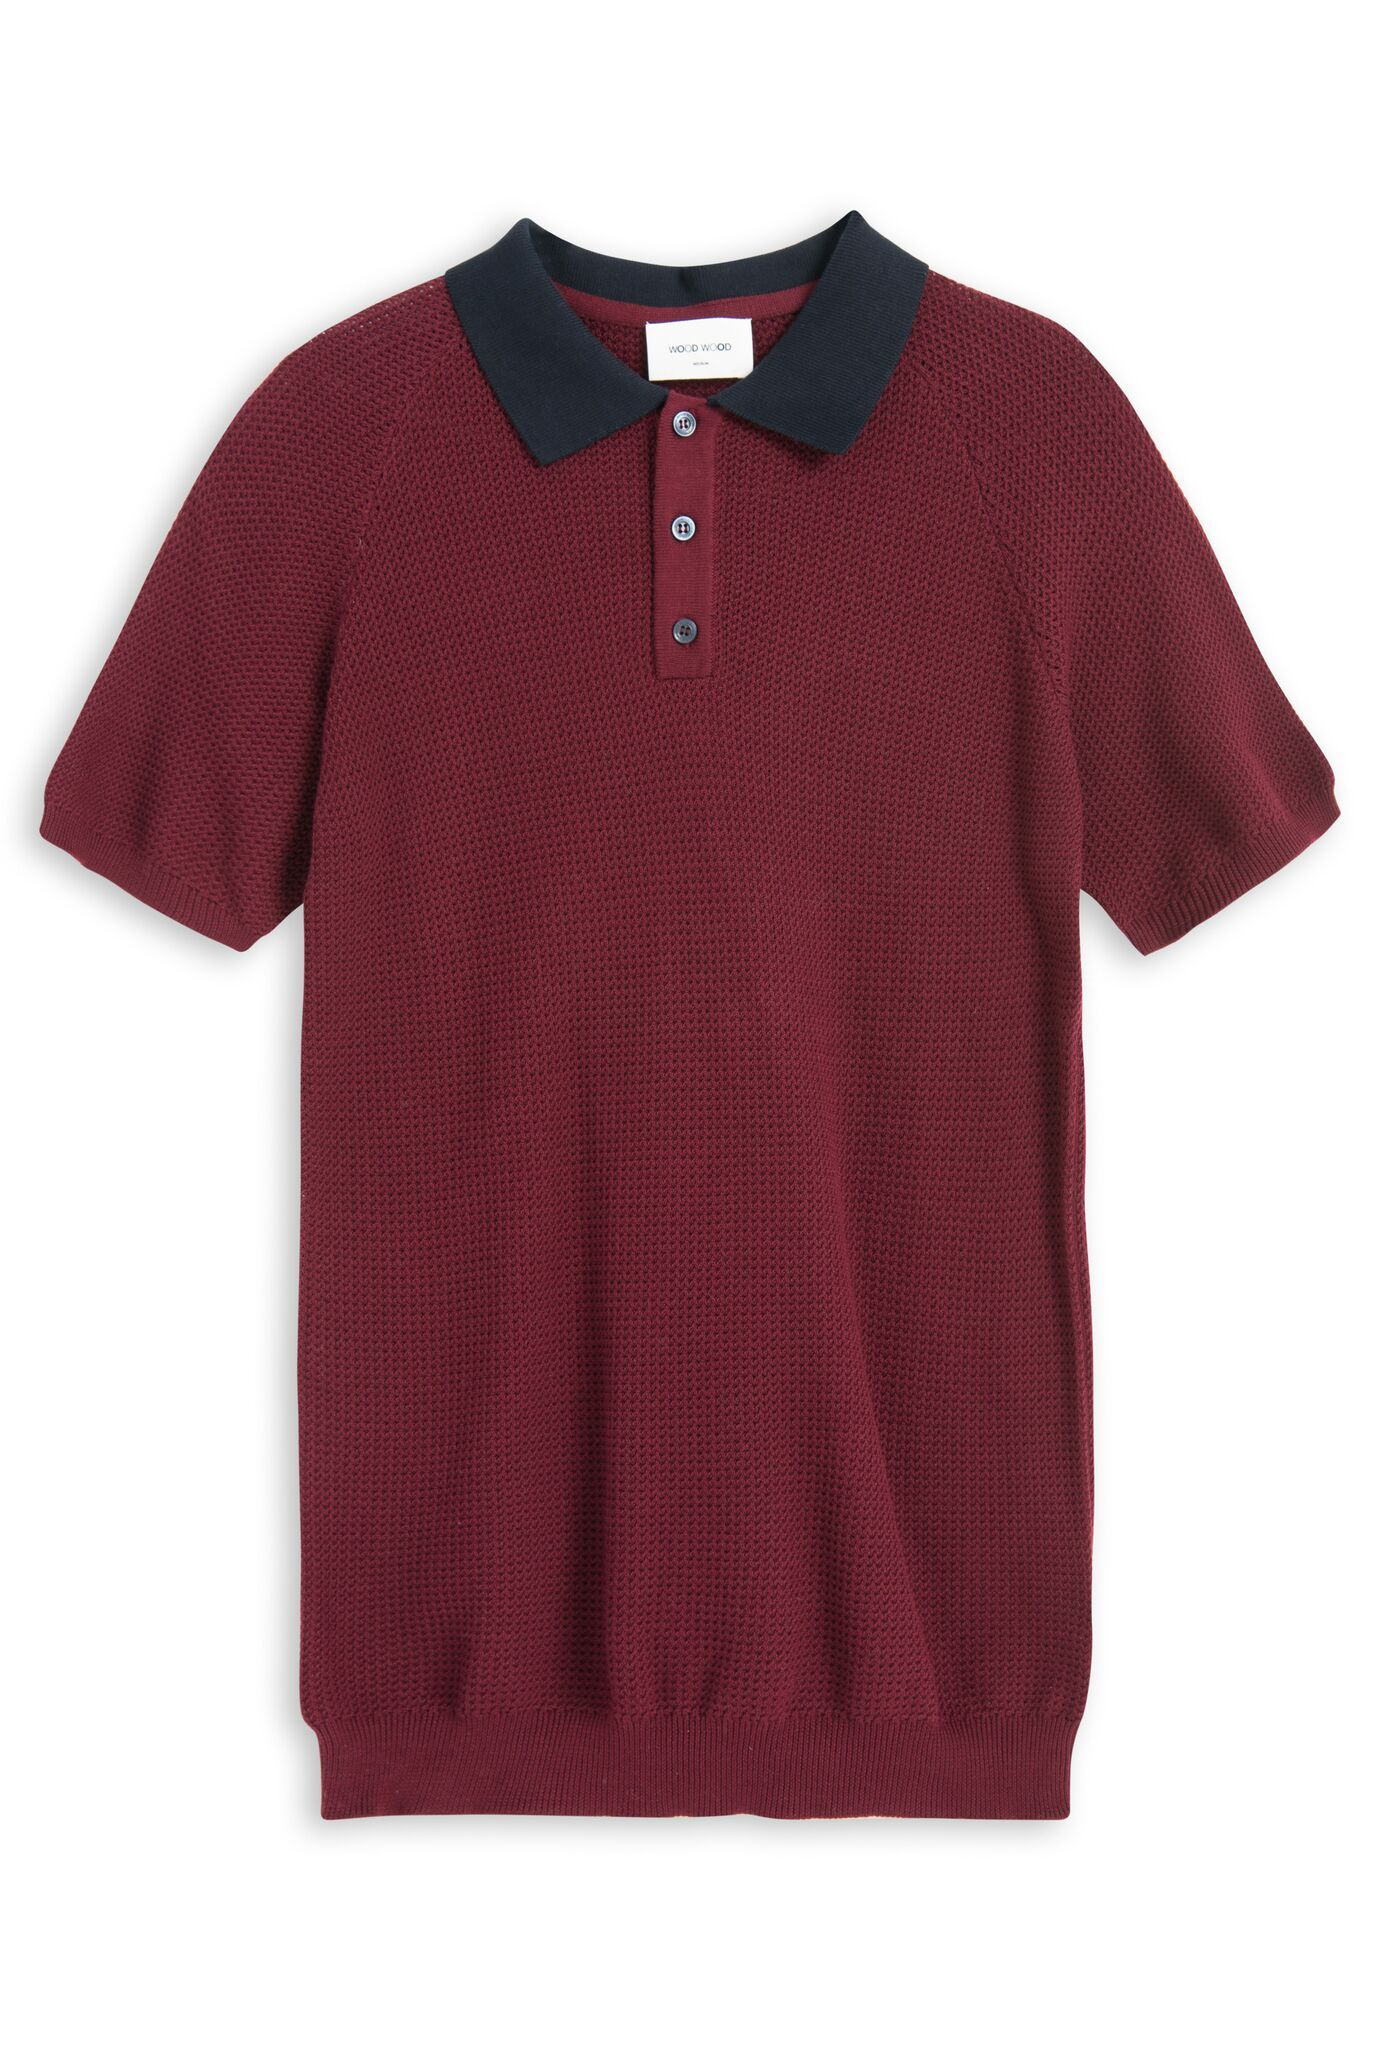 Kosmo Polo Shirt Dark Red Polo Shirt Wood Wood - der ZEITGEIST